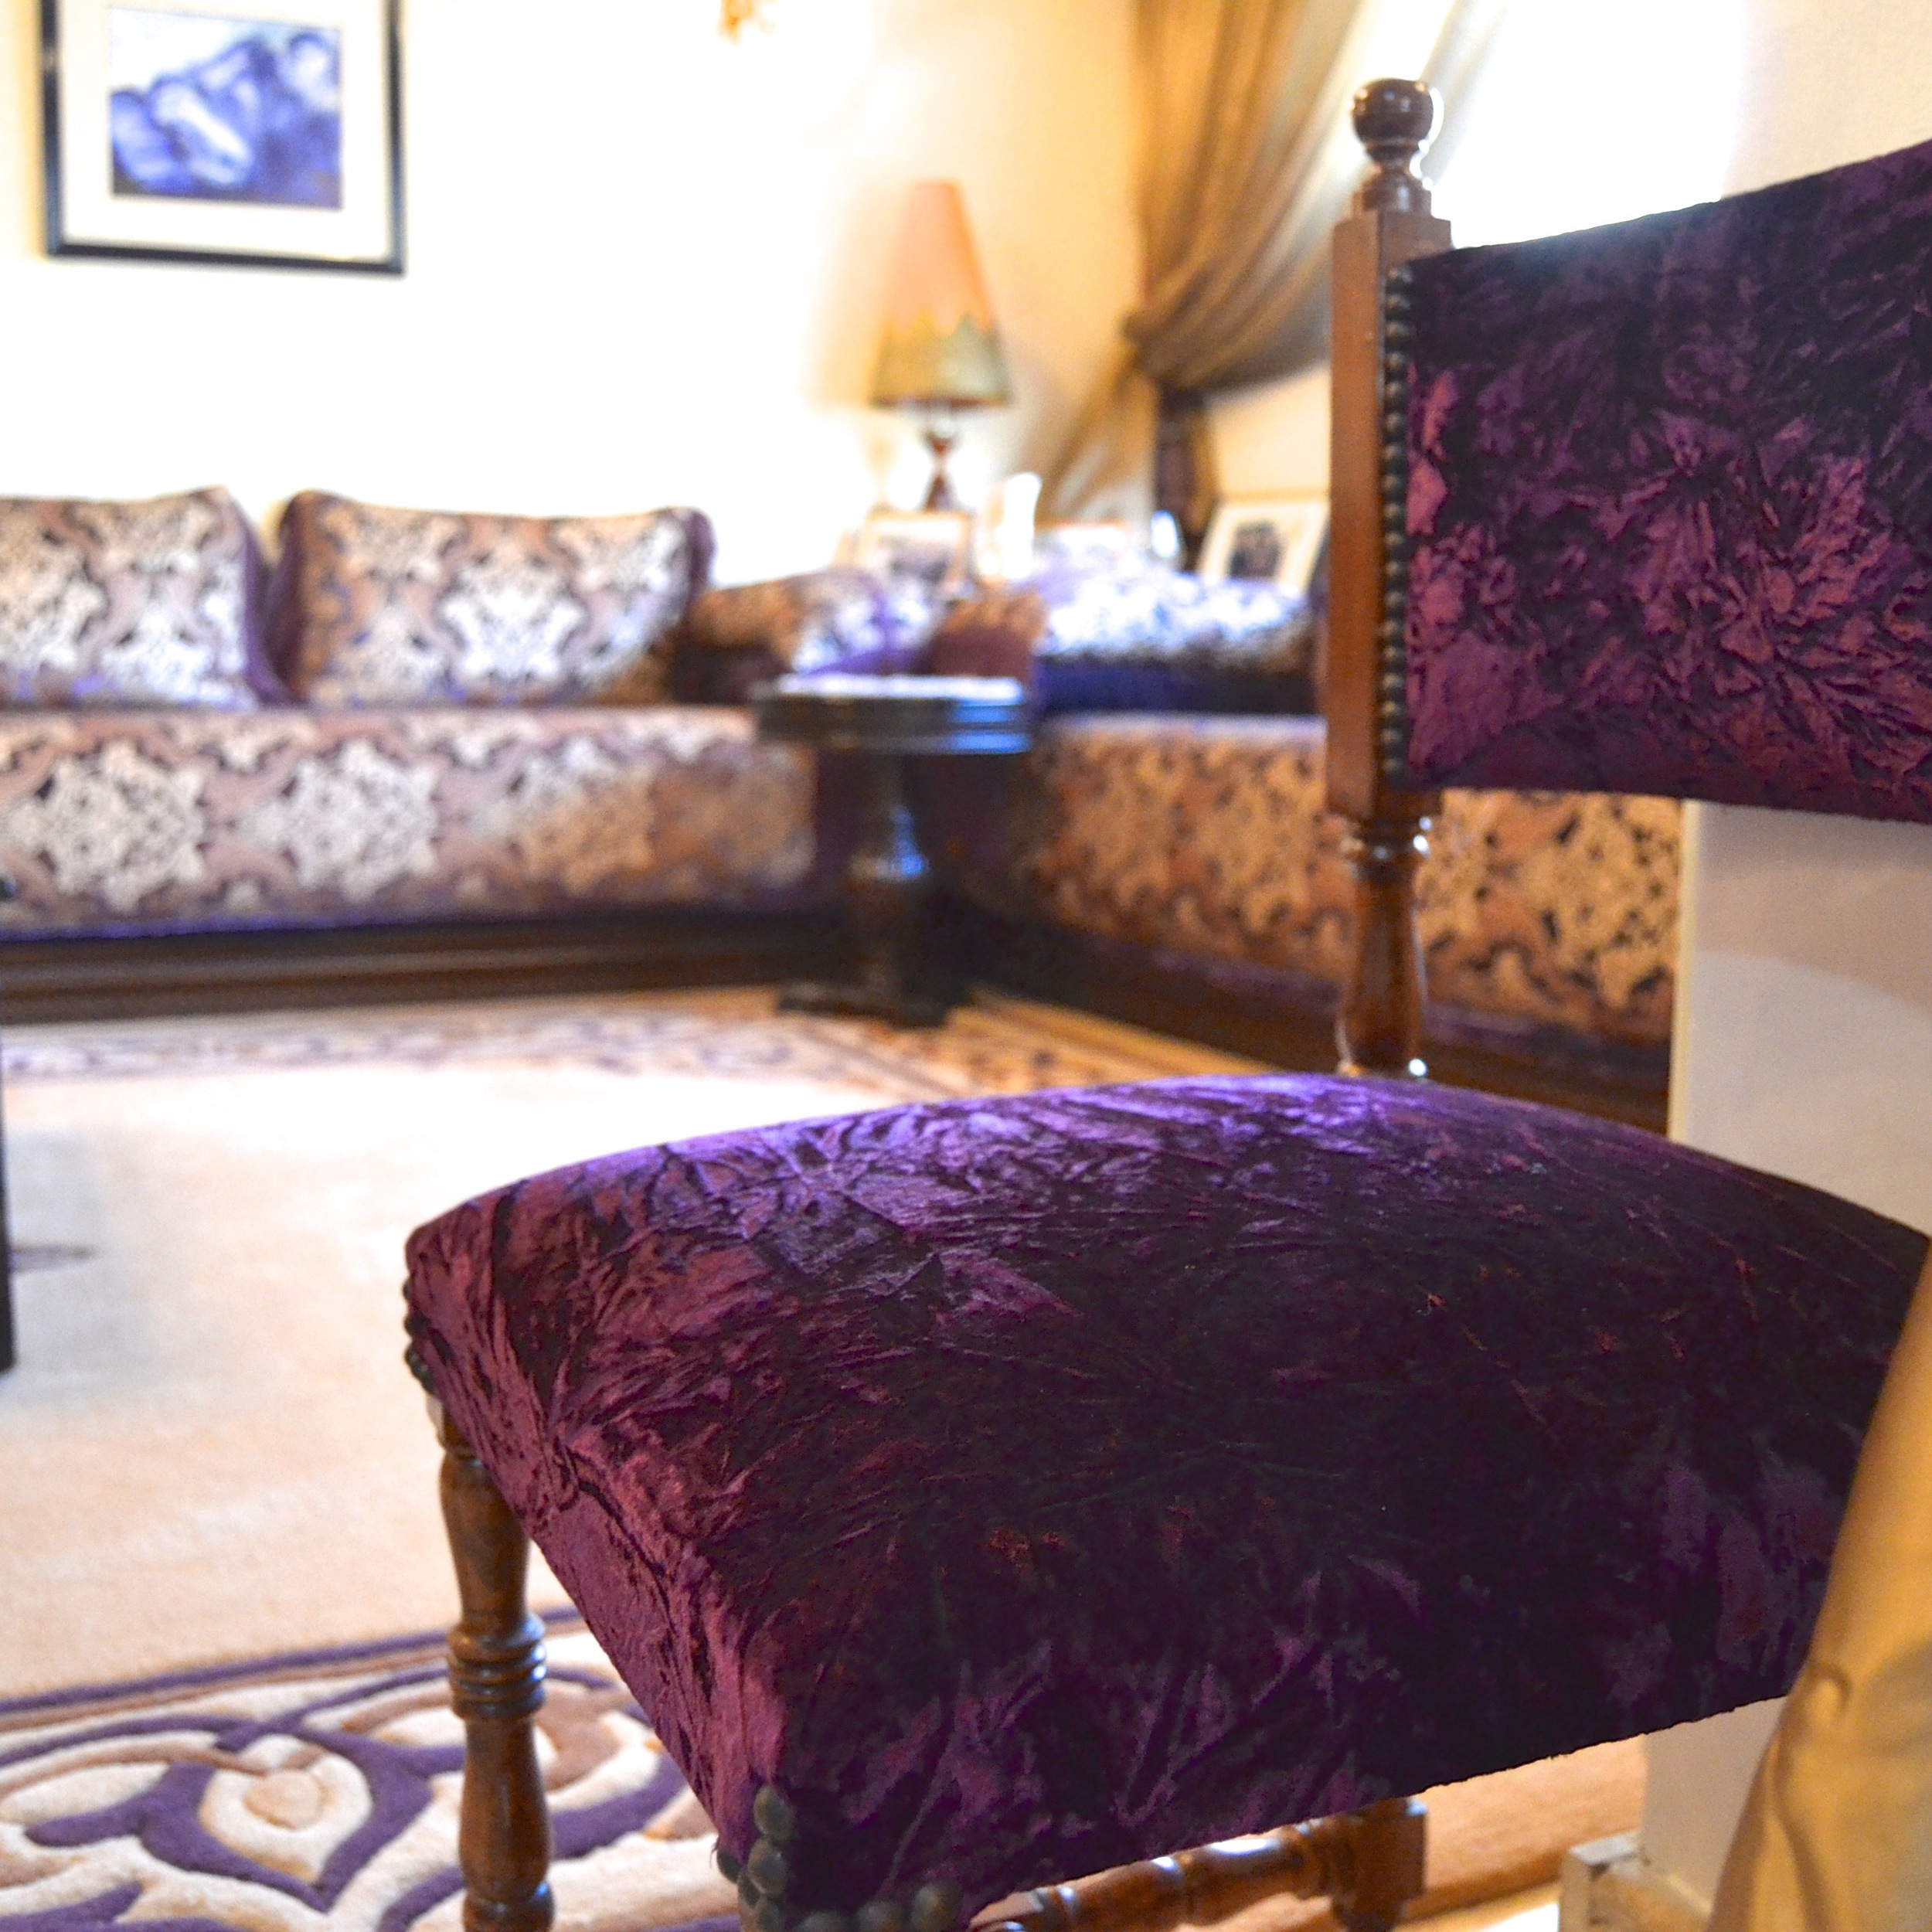 Small chairs can be pulled up for more guests to joinfestivities.